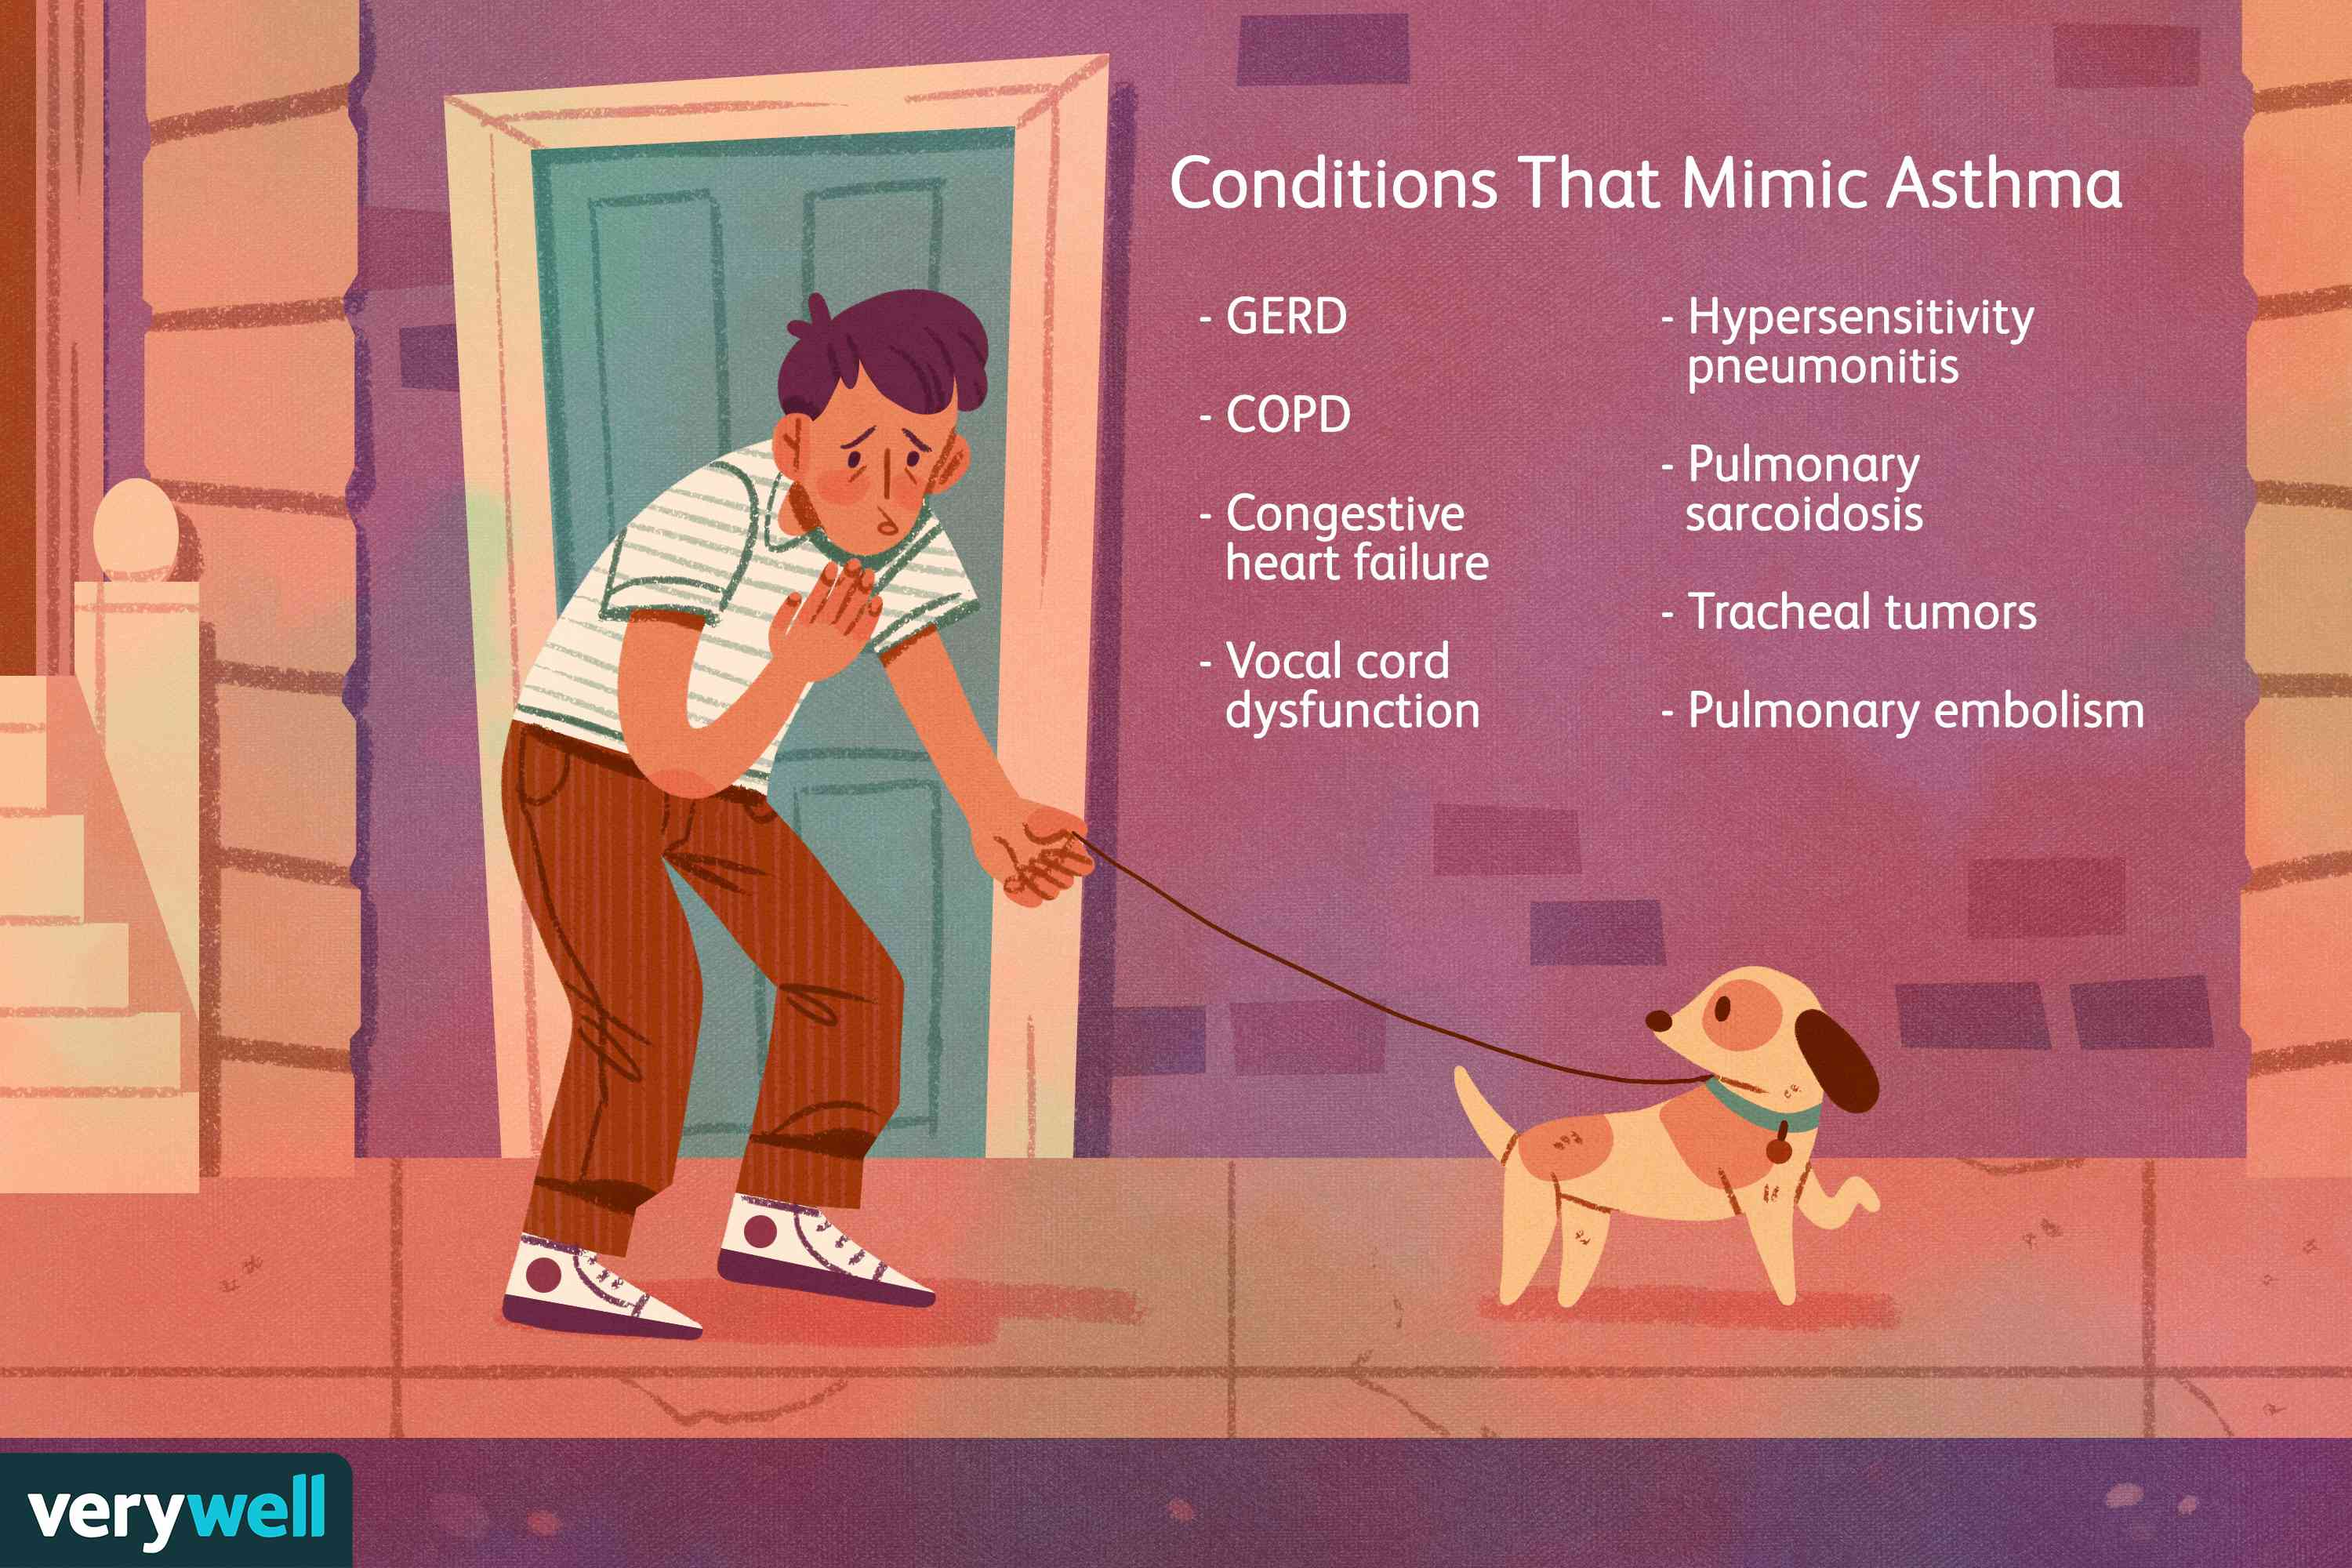 Conditions That Mimic Asthma